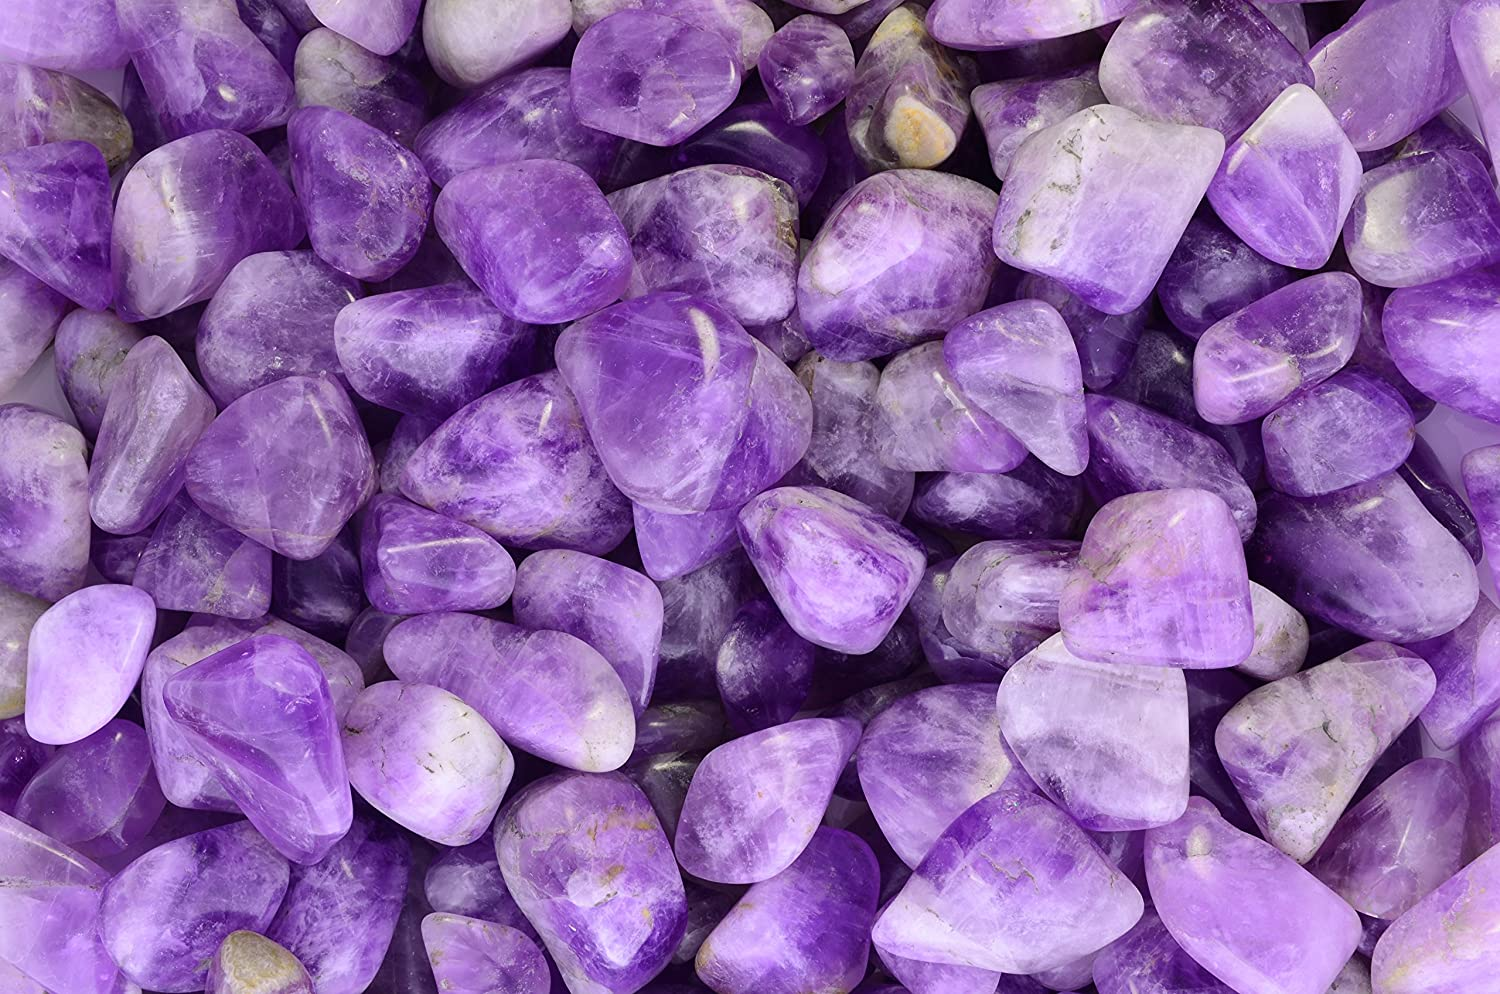 """Fantasia Materials: 1 lb Tumbled Deep Purple Amethyst Stones from Madagascar - Small - 0.75"""" to 1.25"""" Avg."""